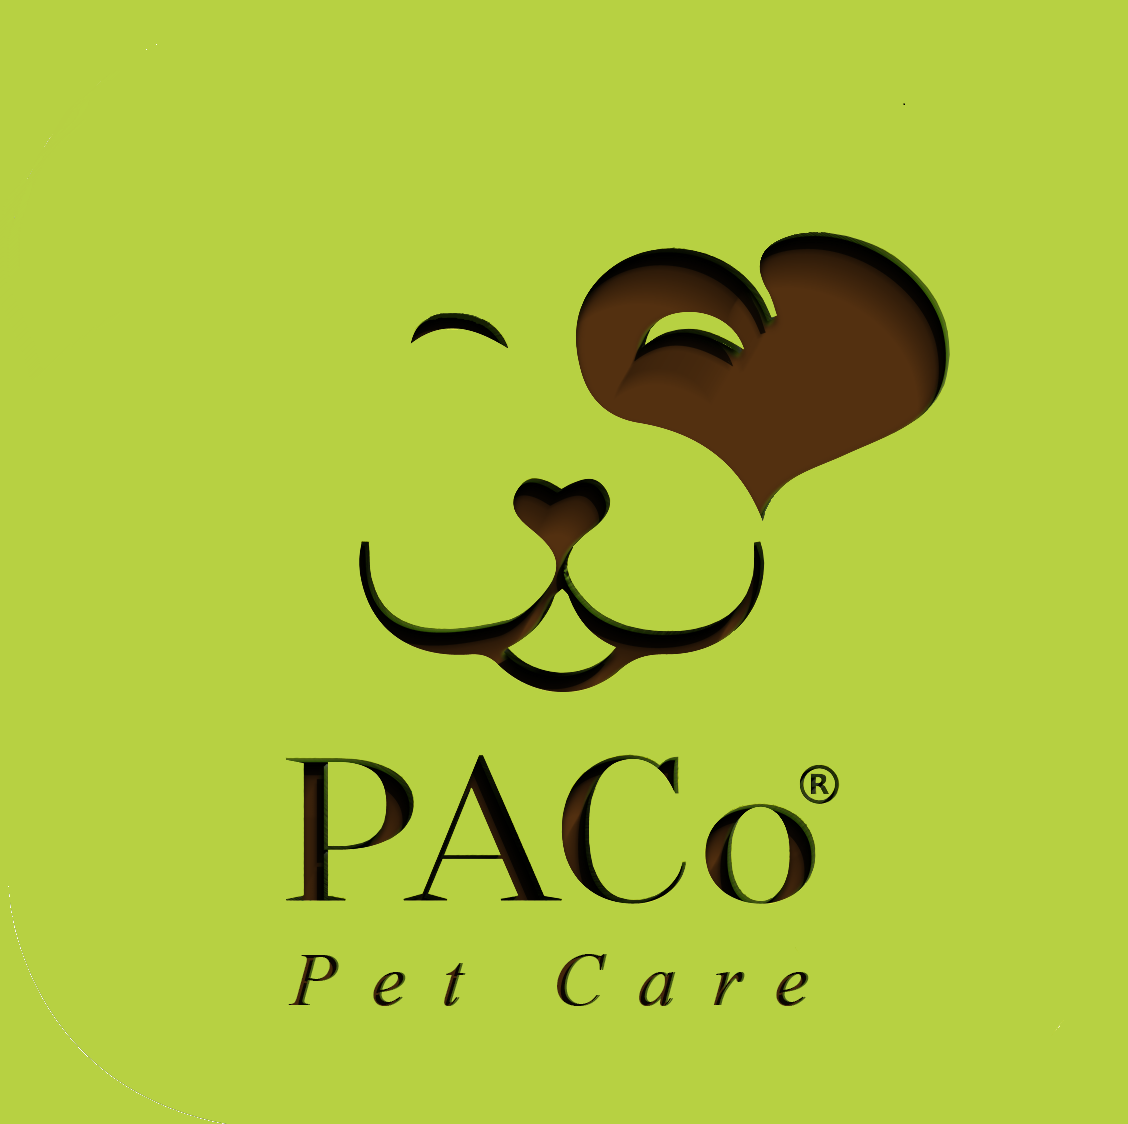 PACo Pet Care